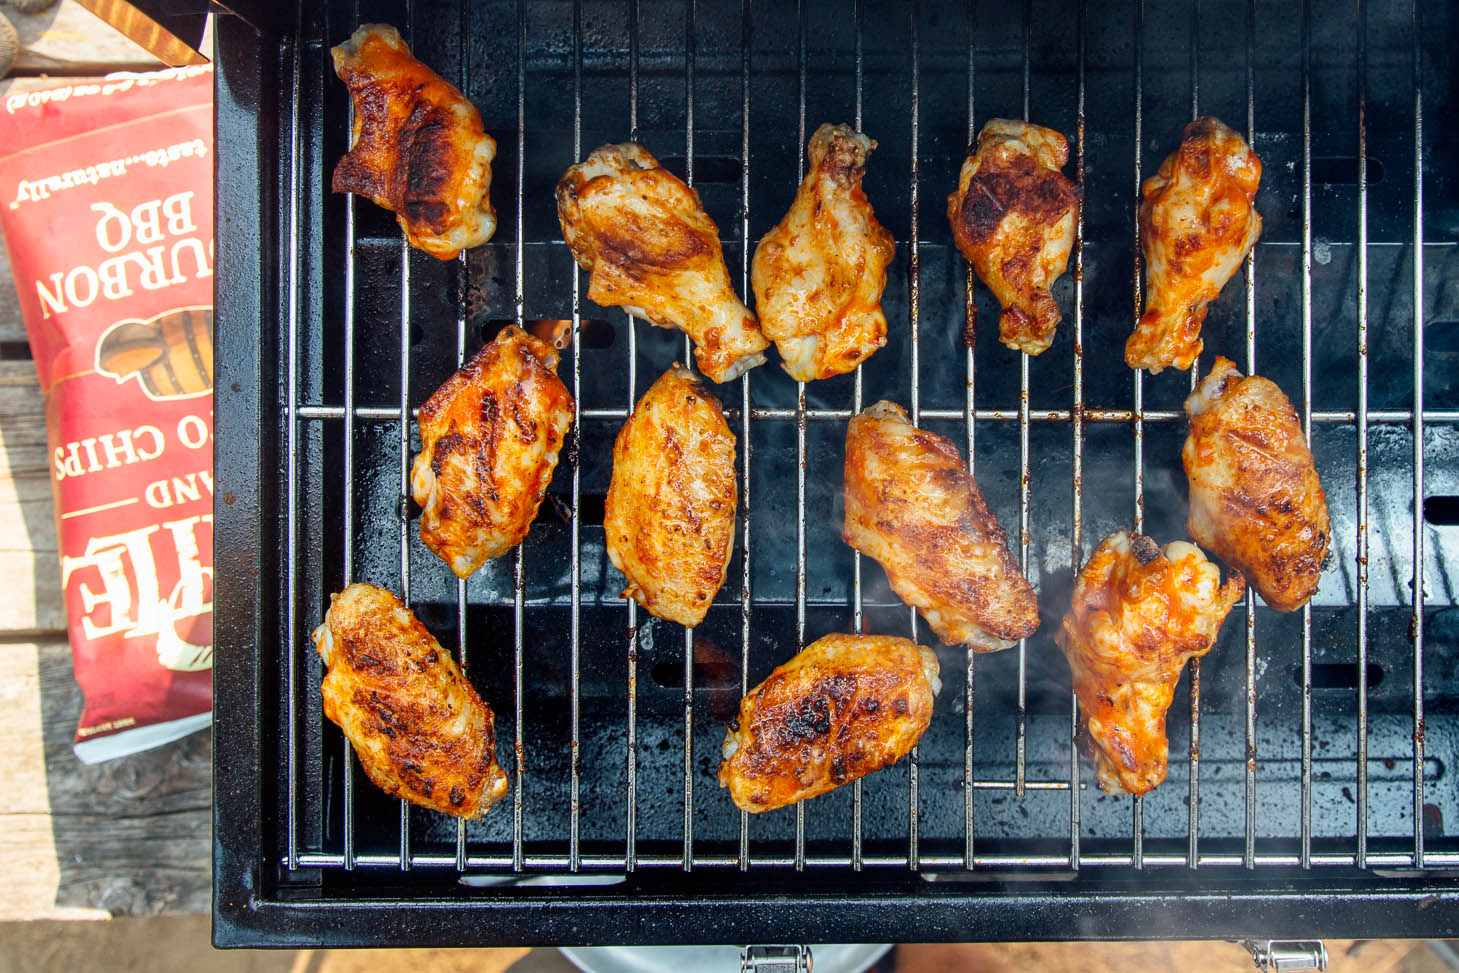 Chicken wings on a tabletop grill